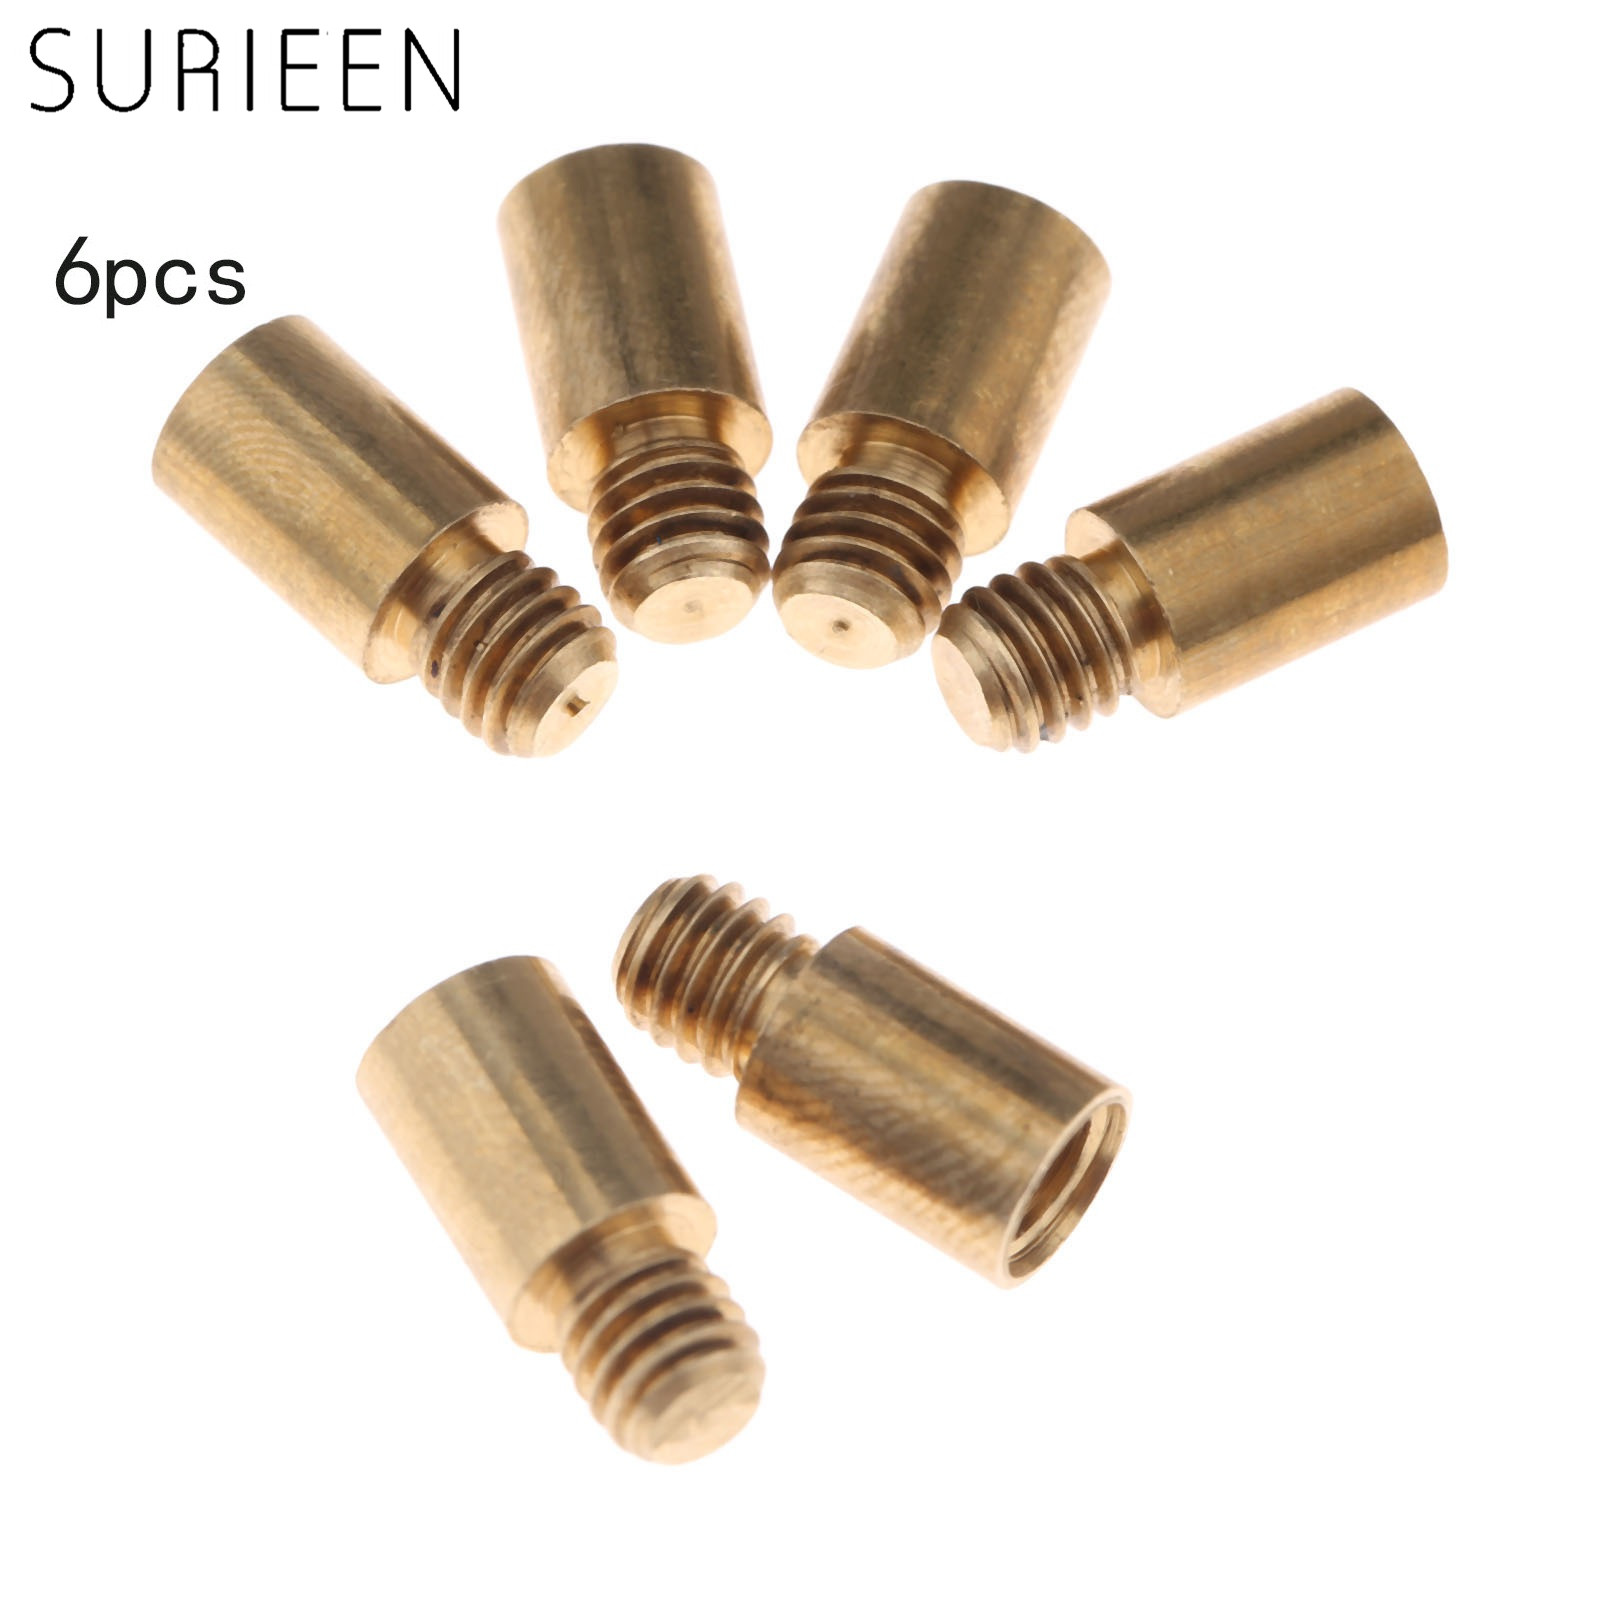 SURIEEN 6pcs Professional 1.5 Grams Dart Weight Add Accentuator Tools Accessories With 2BA Thread 13mm Length Dart Replacements